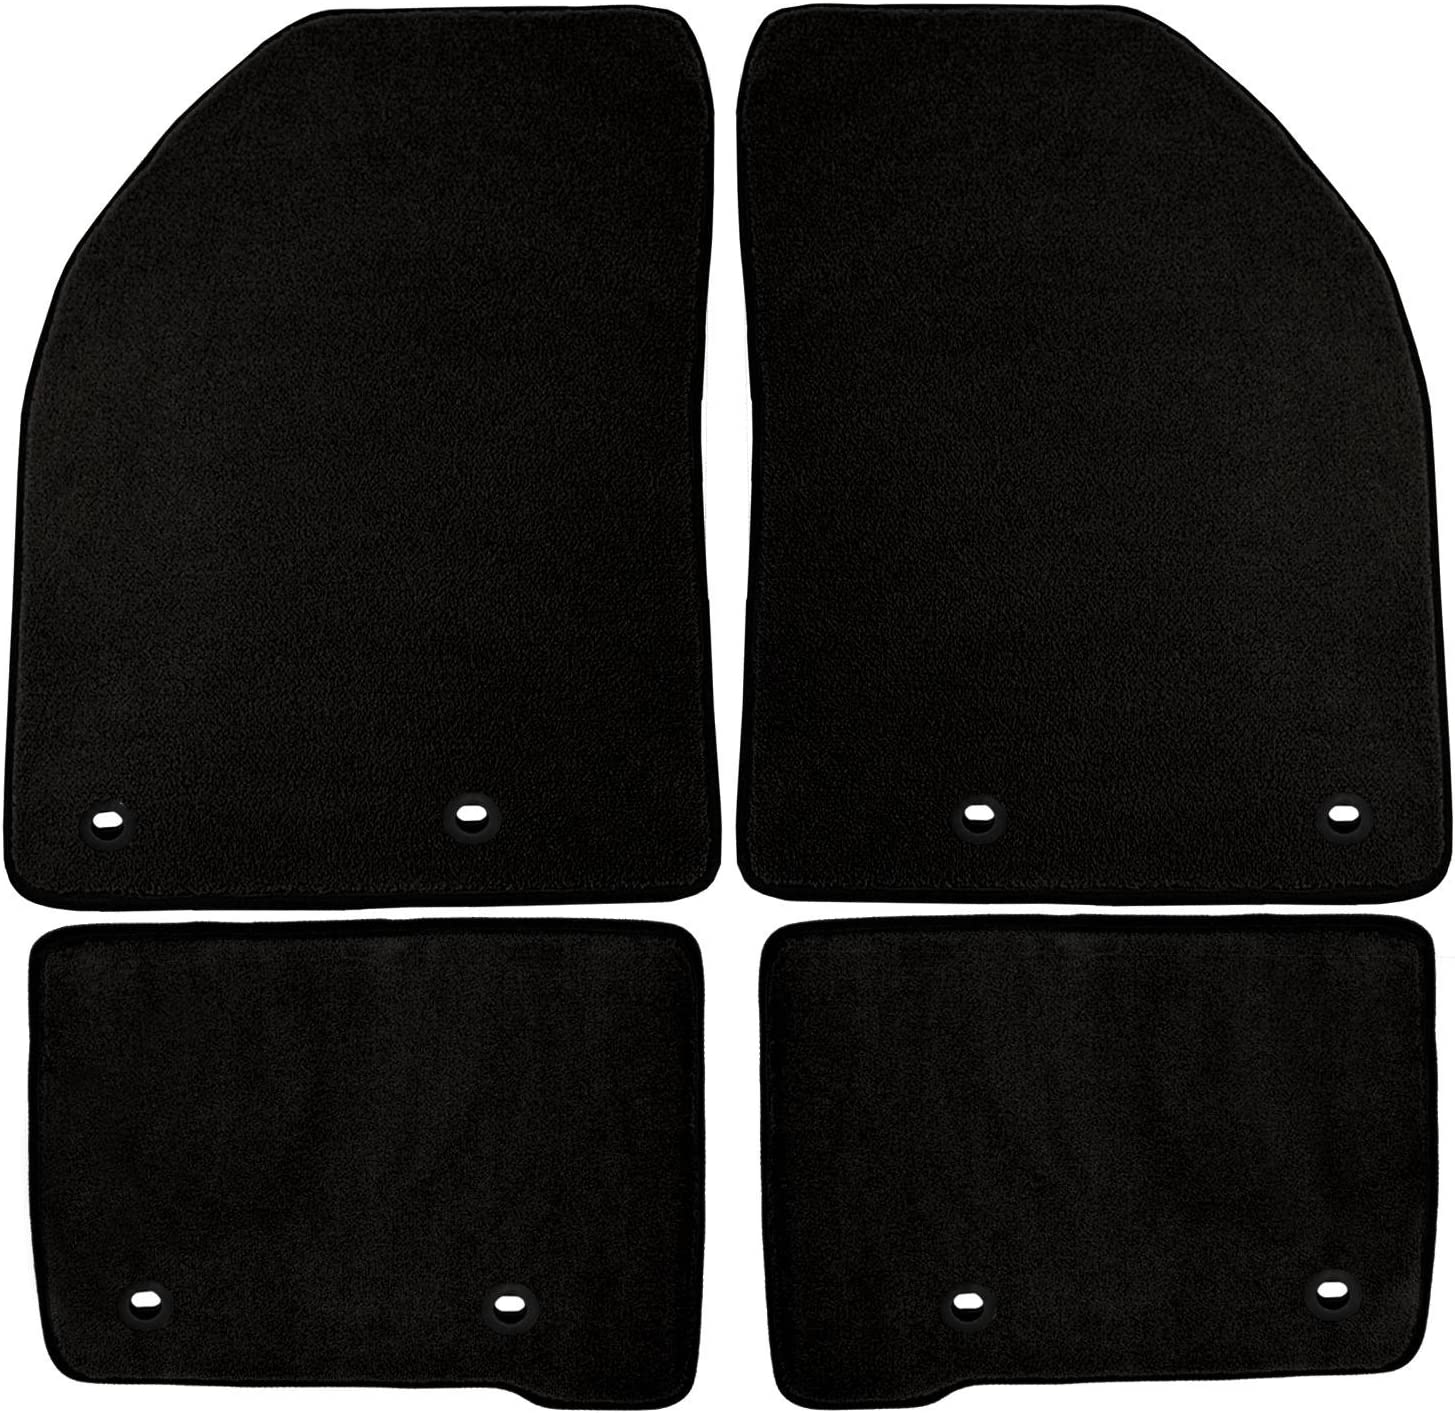 Carpet Black 70 oz Coverking Front and Rear Floor Mats for Select Mercury Grand Marquis Models